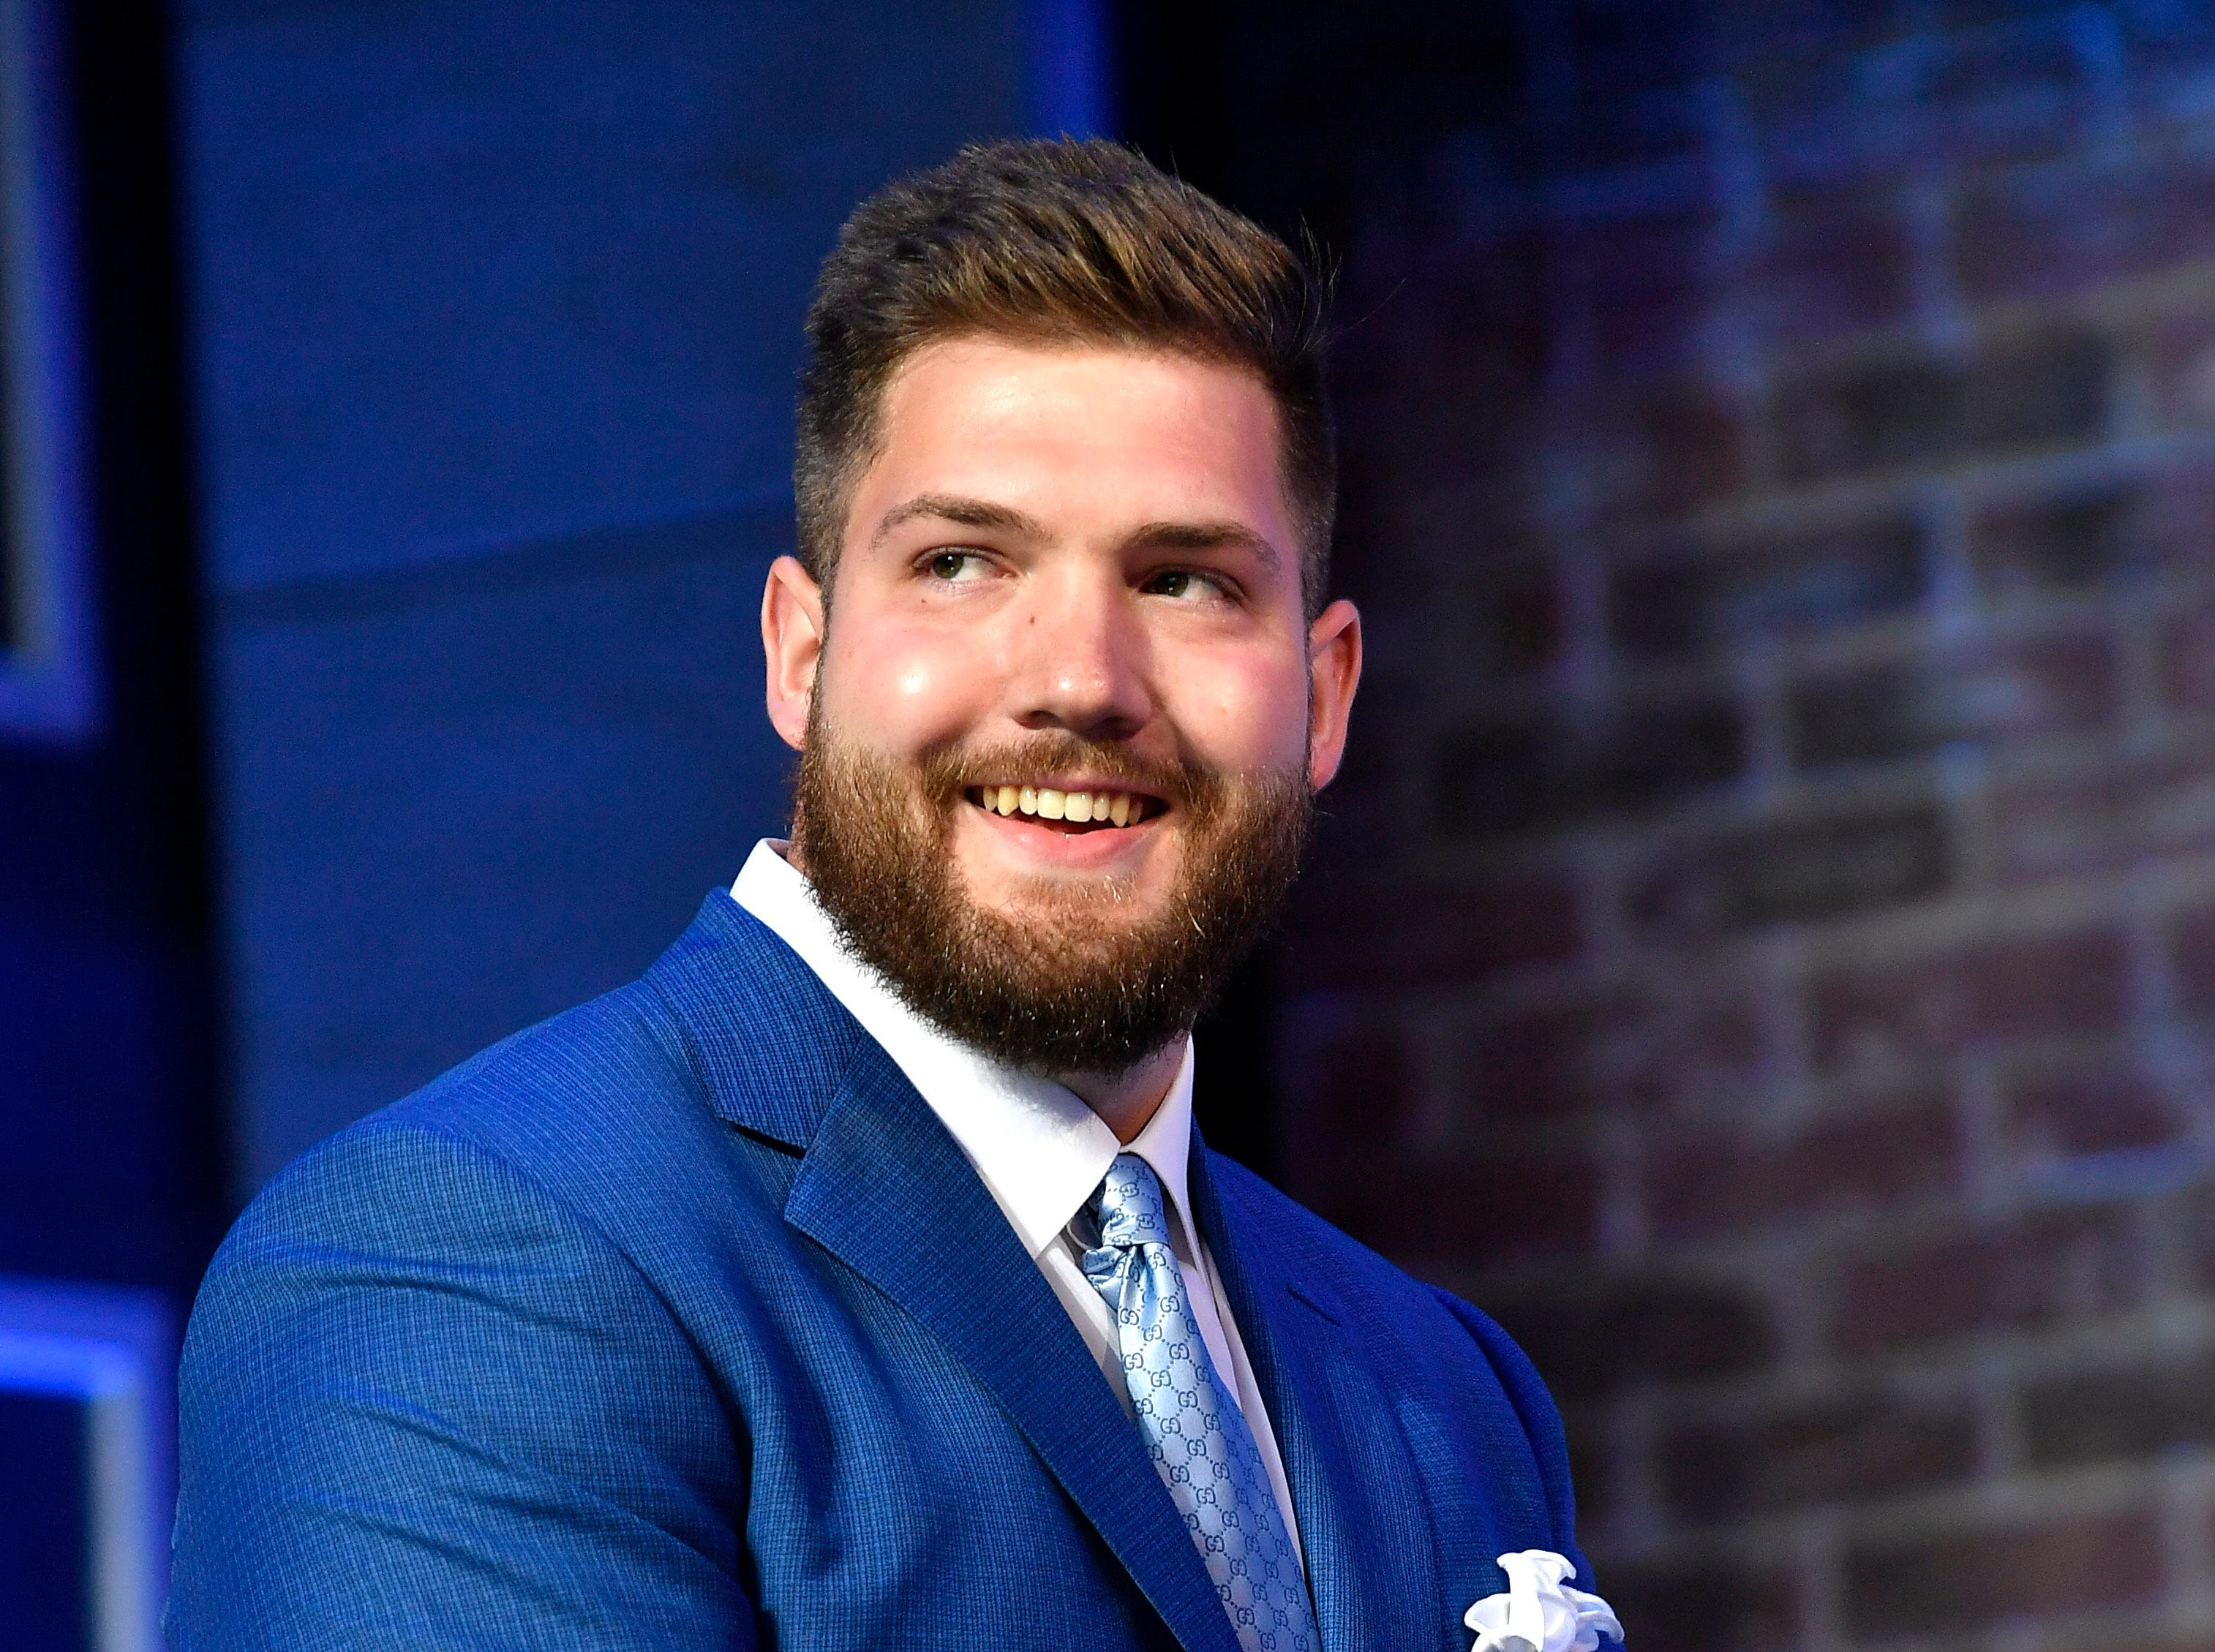 Jonah Williams of Alabama is introduced at the start of the first round of the NFL Draft Thursday, April 25, 2019, in Nashville, Tenn.